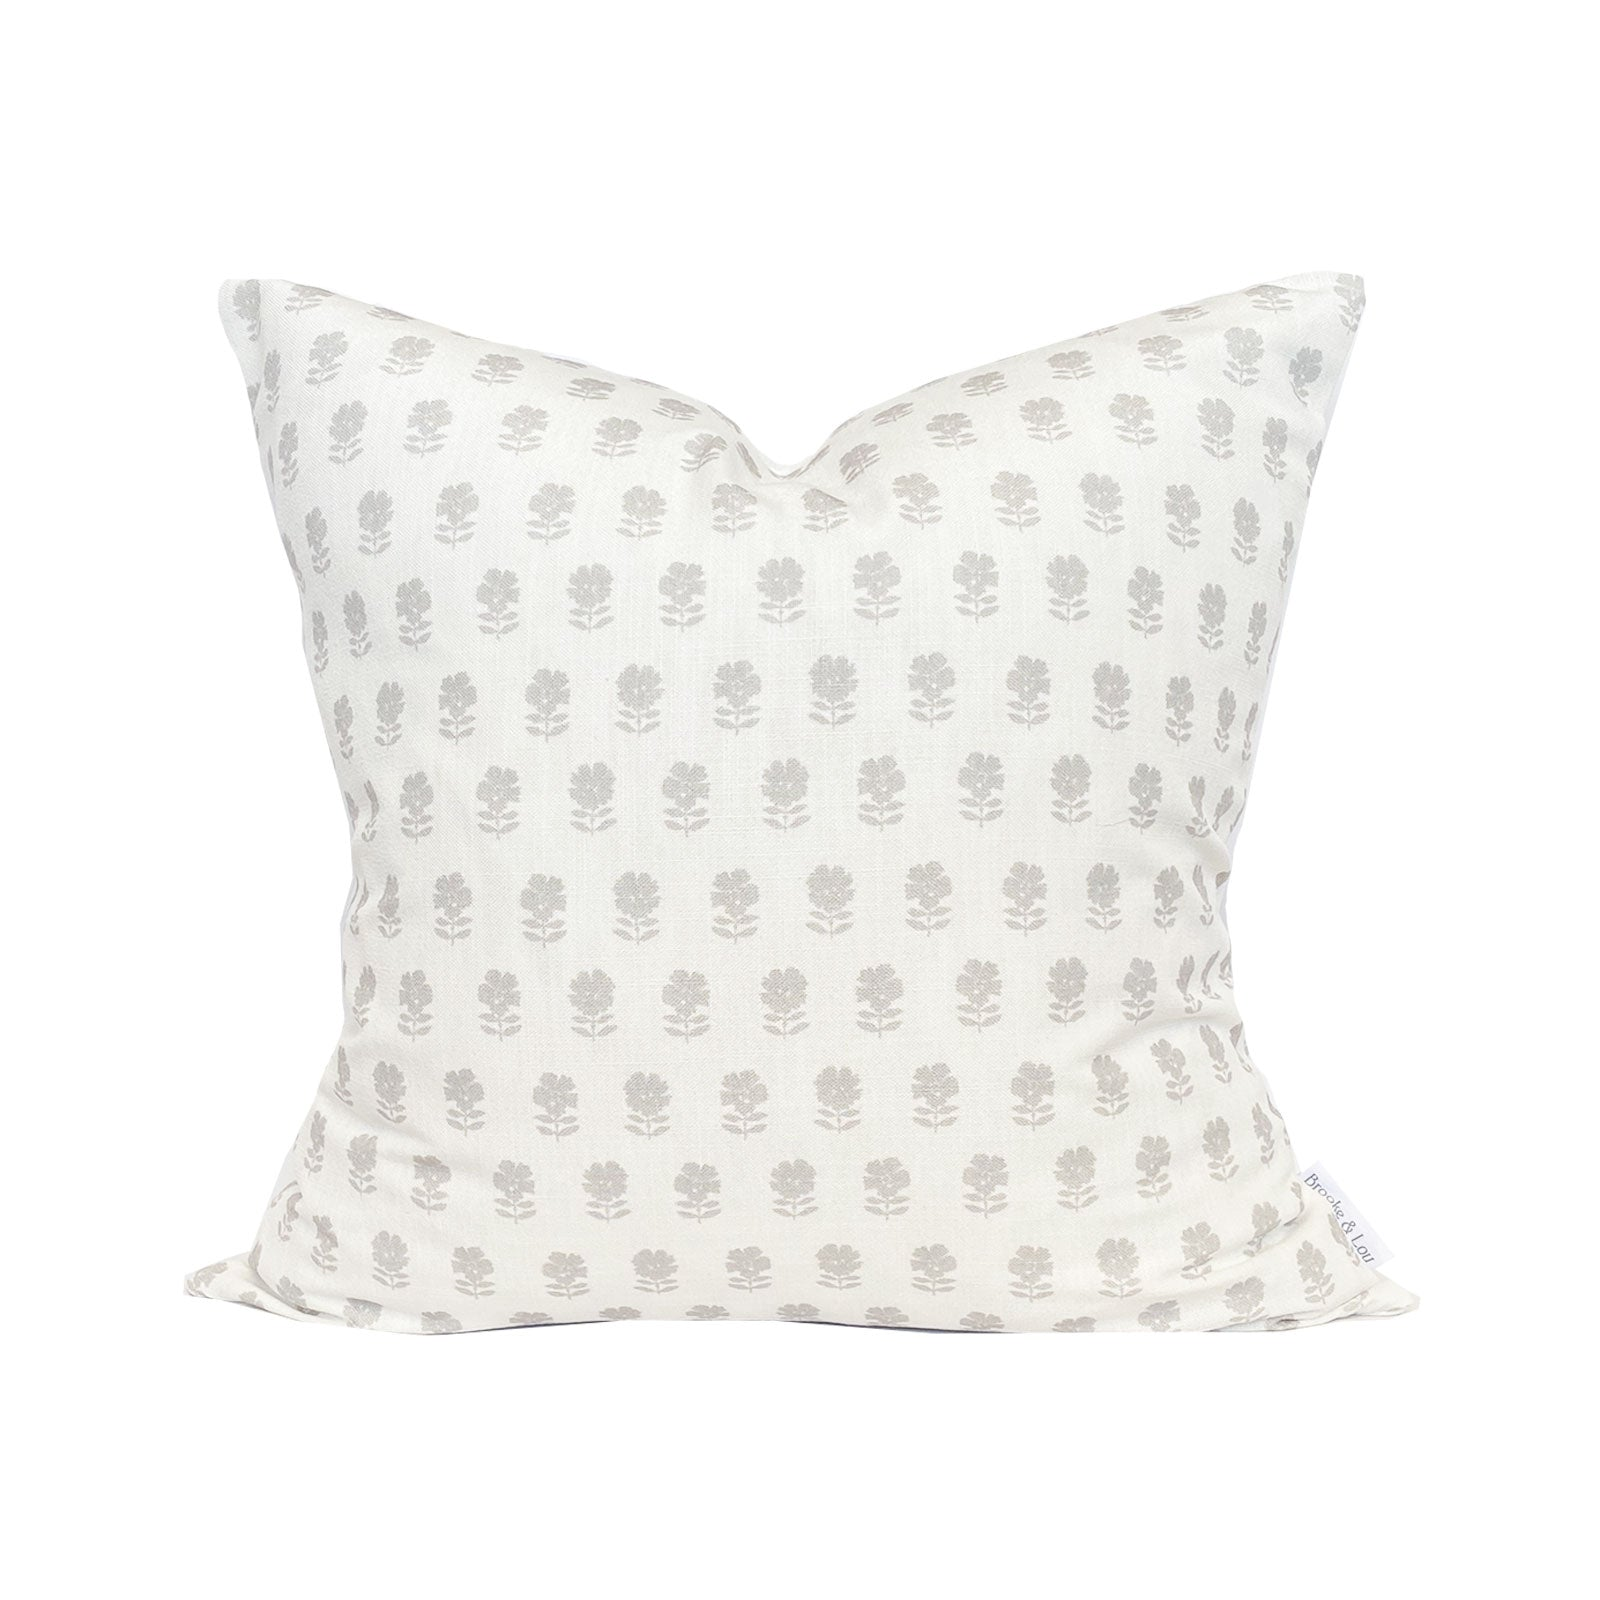 Lulu Floral Pillow in Stone Grey